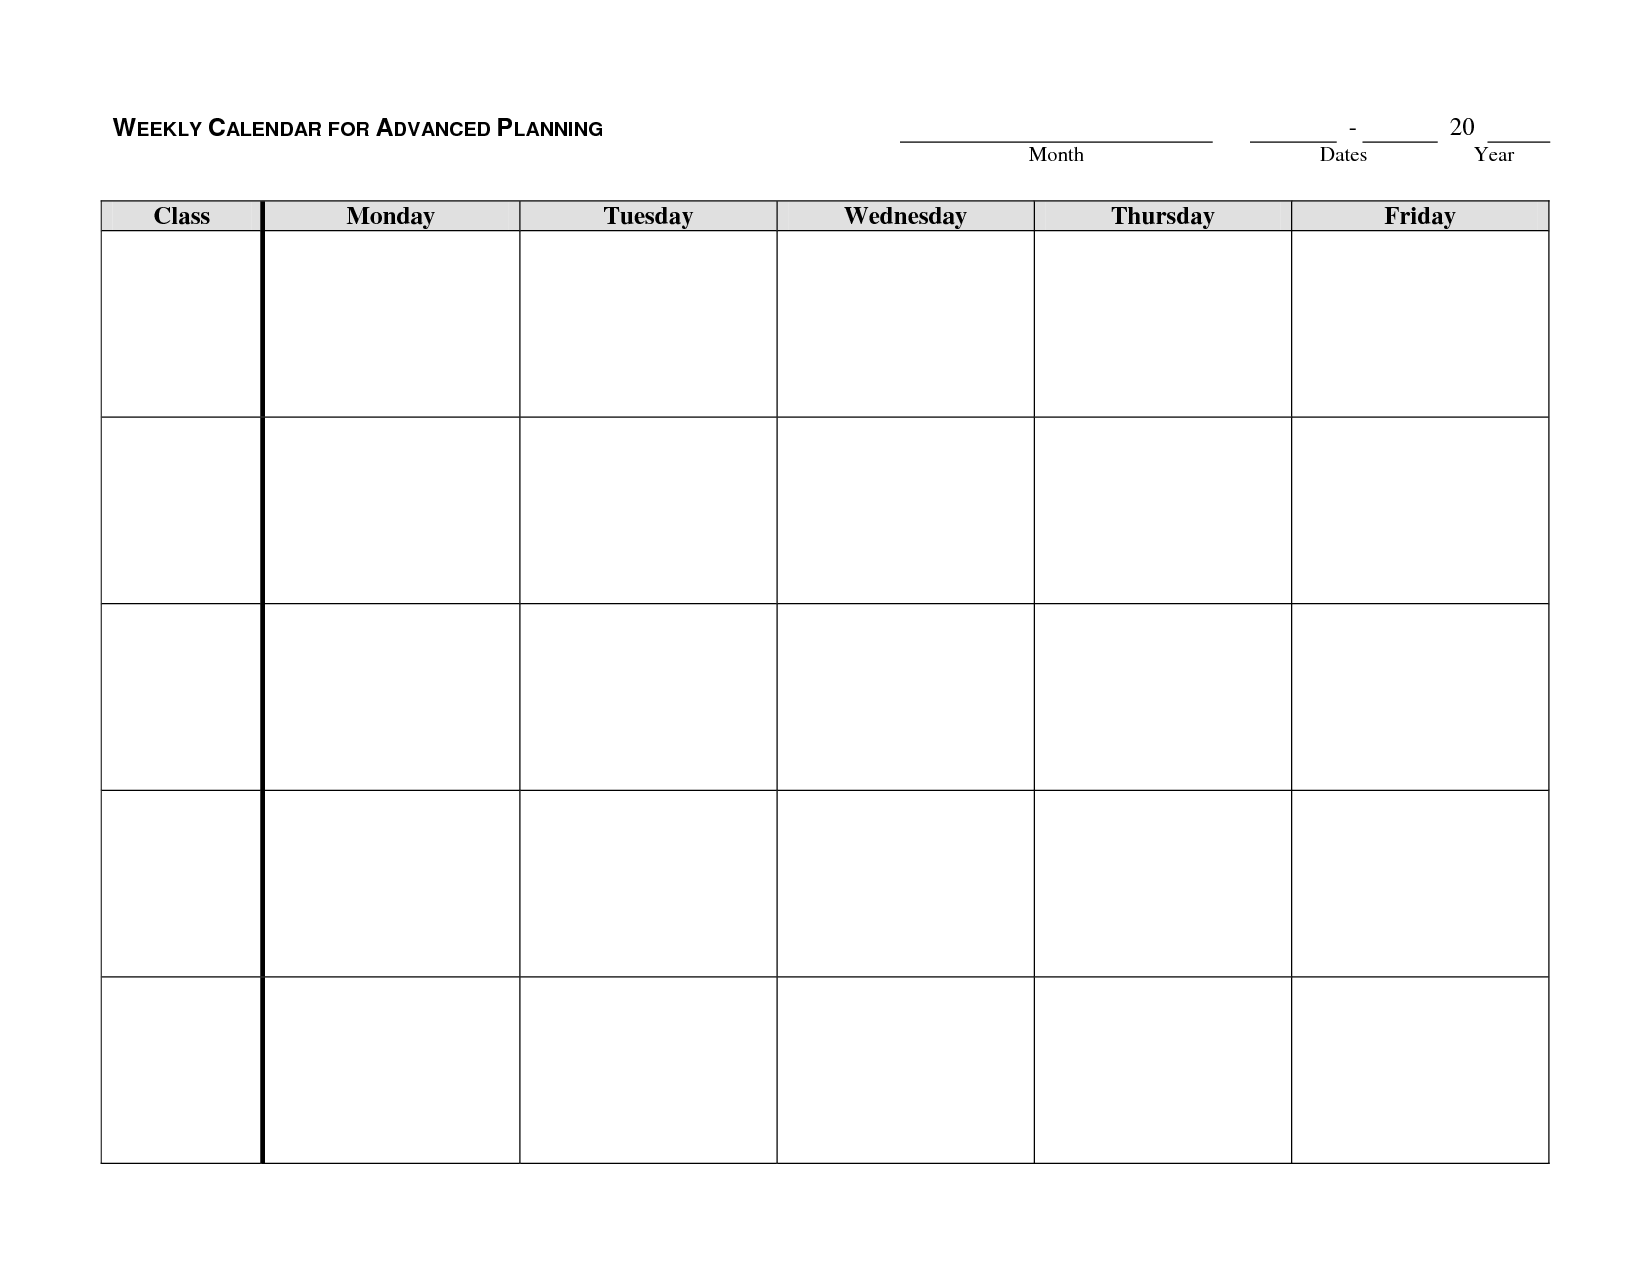 Monday through Friday Weekly Calendar Template